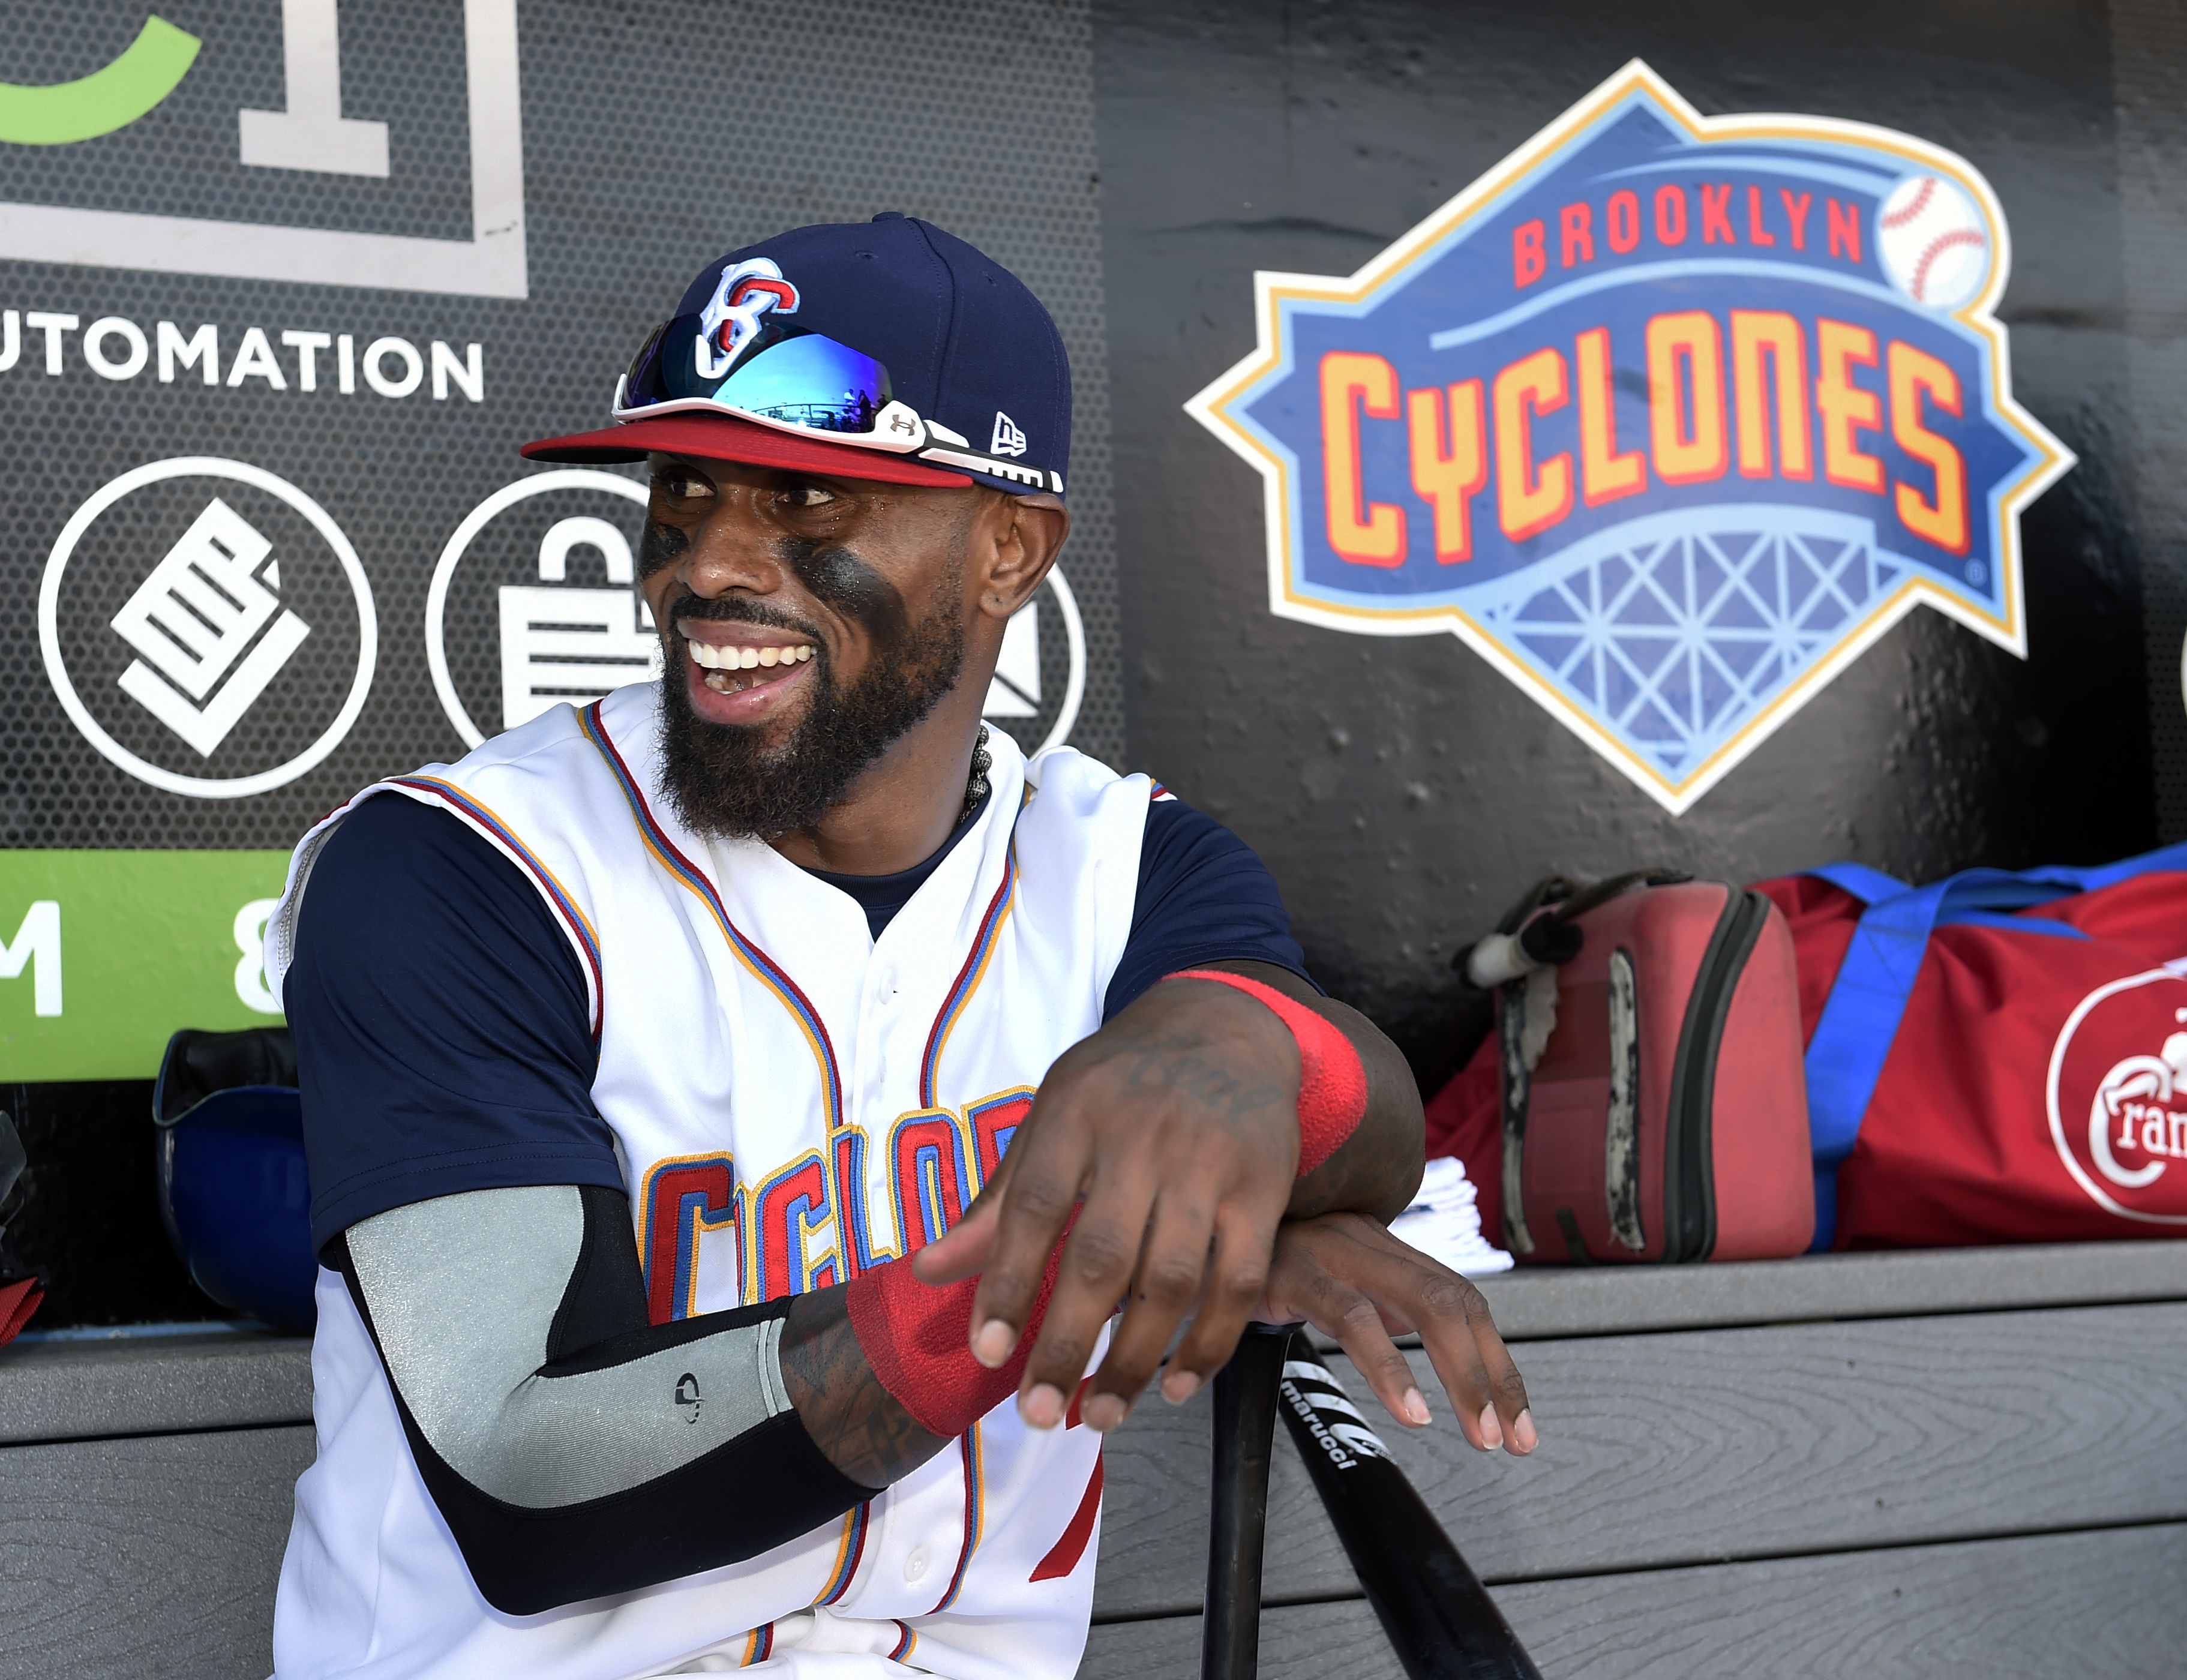 Brooklyn Cyclones Jose Reyes smiles as he rests his hands on his bat in the dugout before a minor league baseball game against the Hudson Valley Renegades, Sunday, June 26, 2016, in New York. Reyes, signed a minor league contract with the New York Mets on